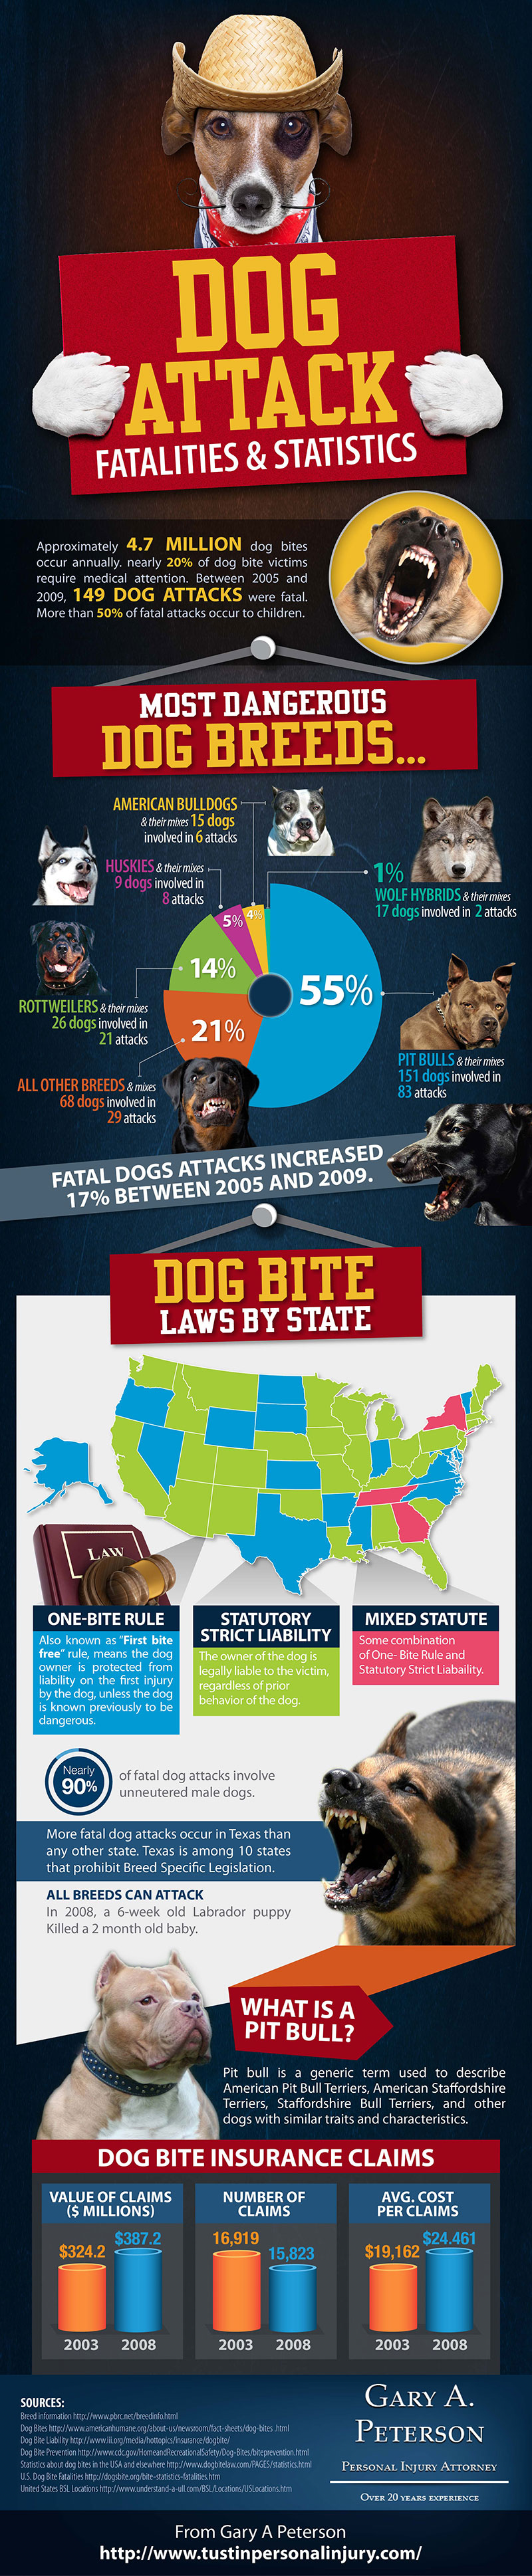 Dog Attack Fatalities Statistics